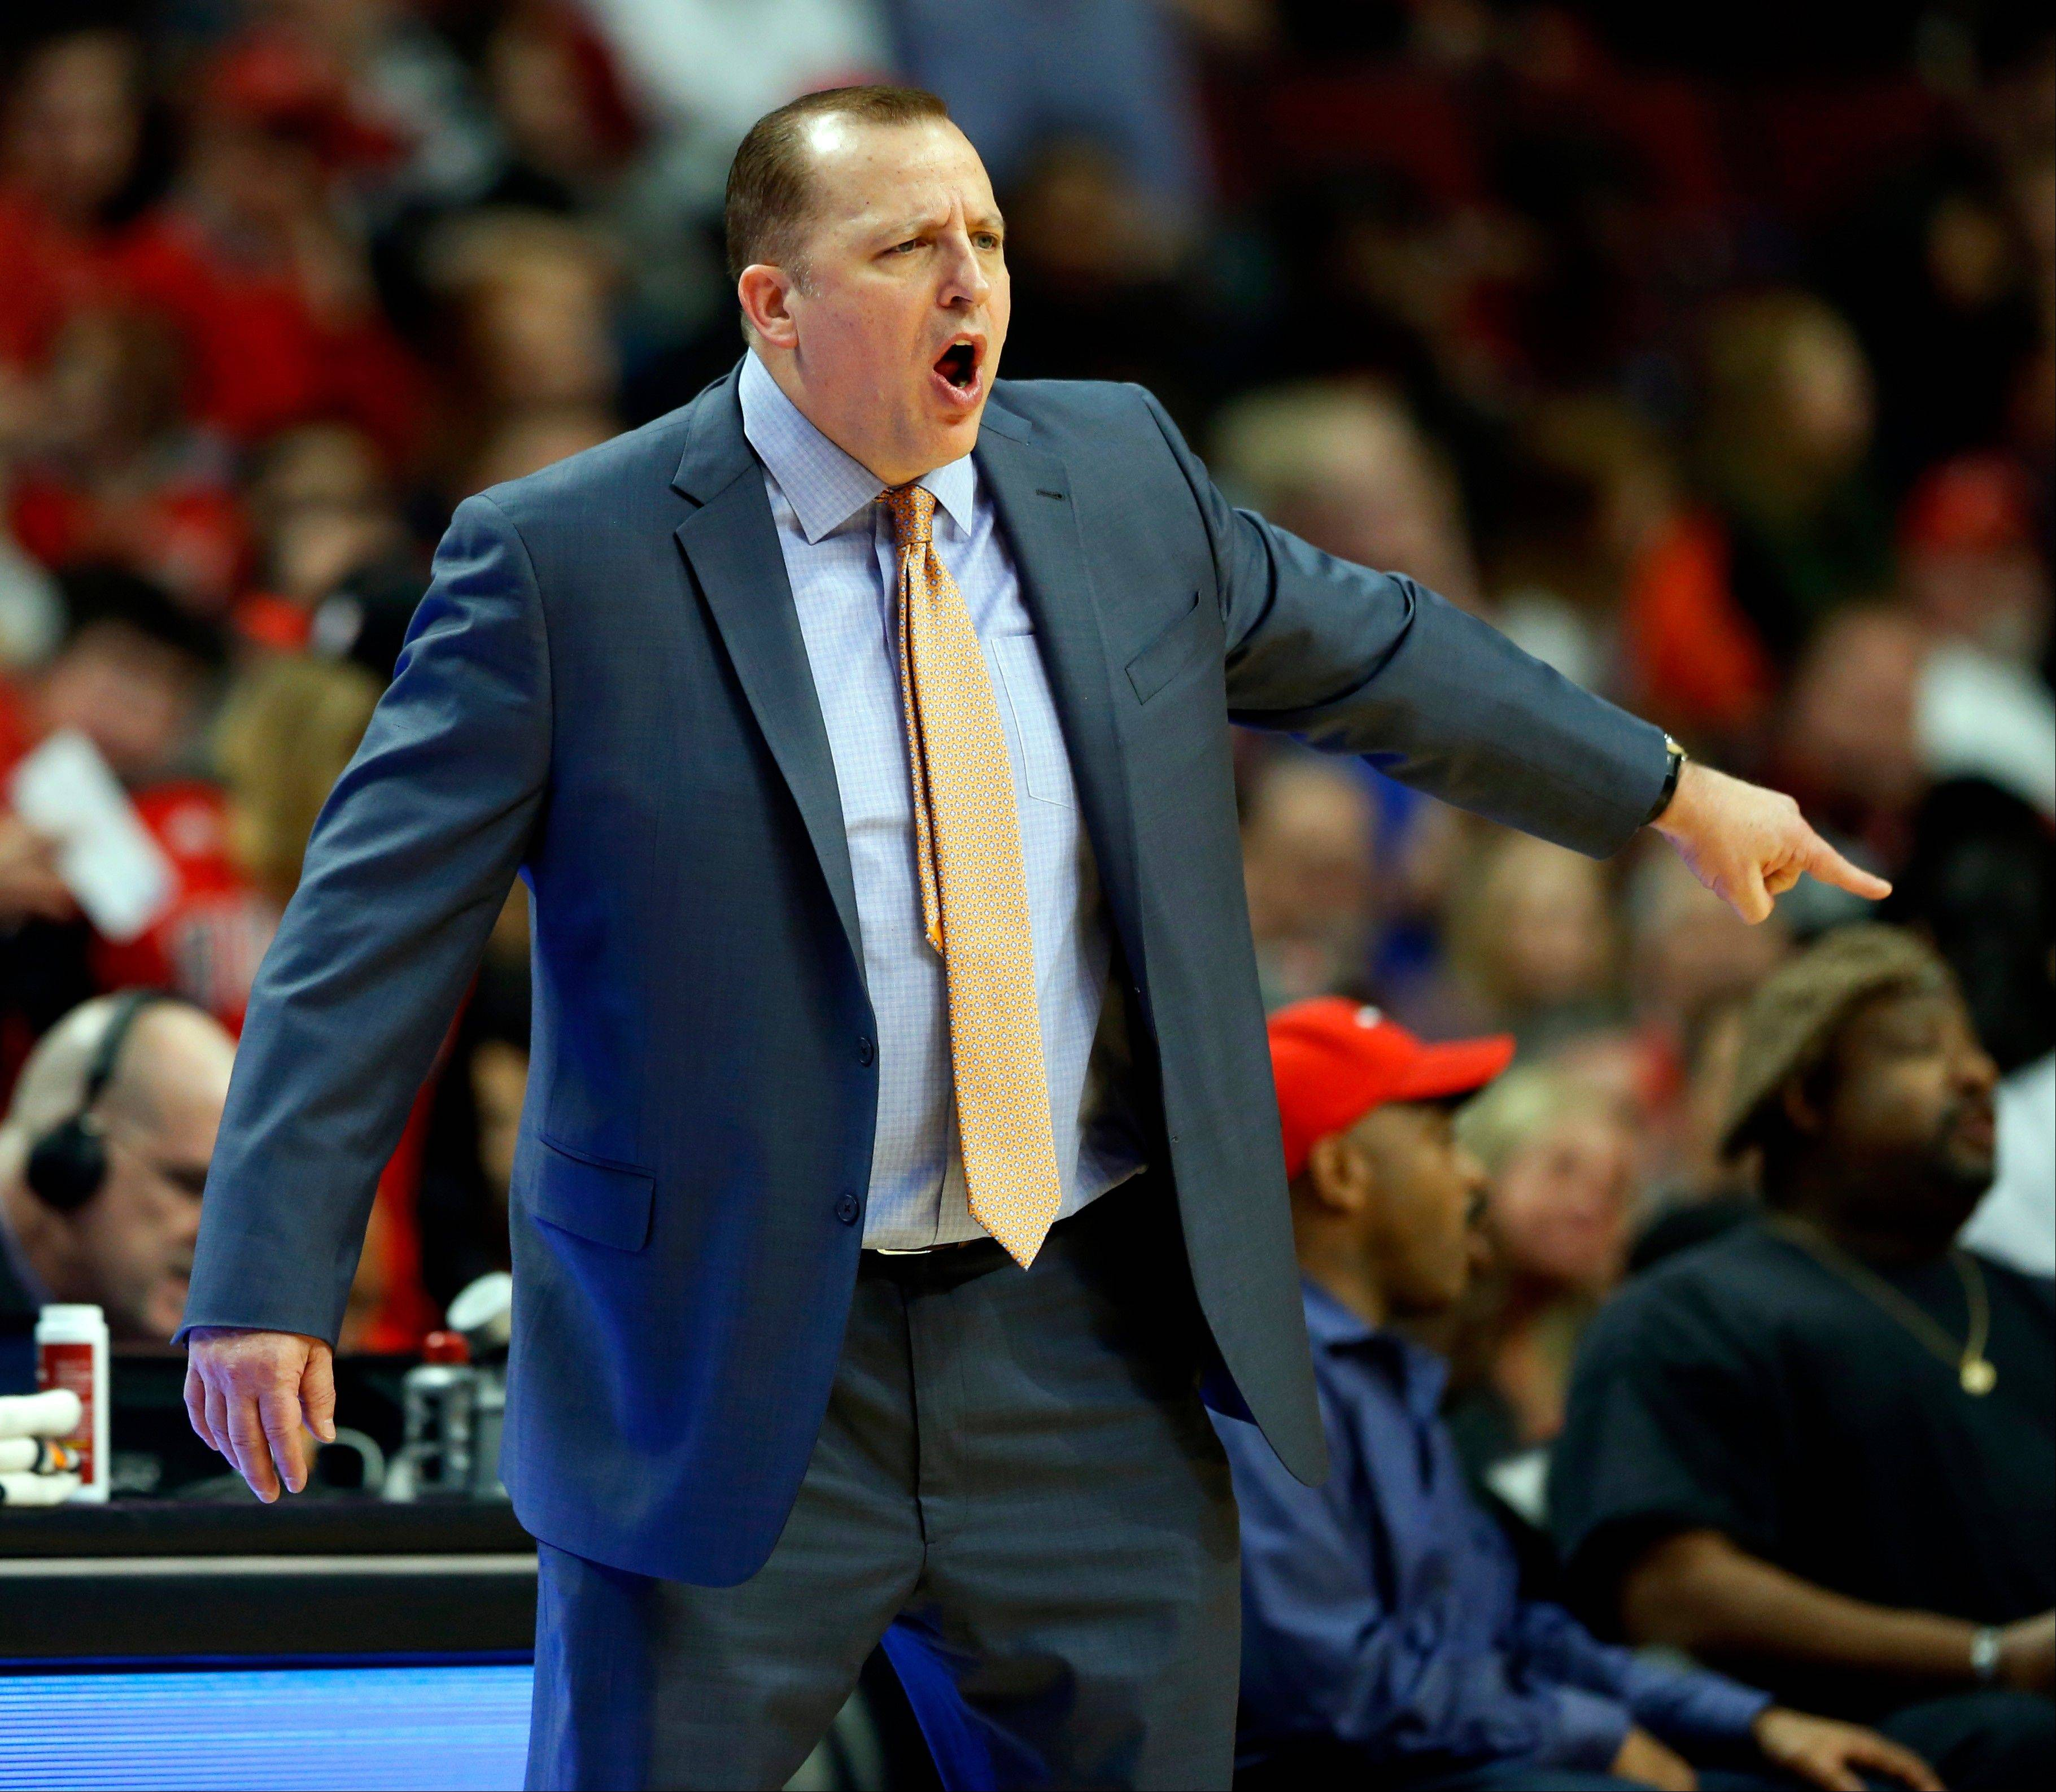 Tom Thibodeau directs his team against the Charlotte Bobcats during the second half of an NBA basketball game in Chicago, Saturday, Jan. 11, 2014. The Bulls won 103-97.